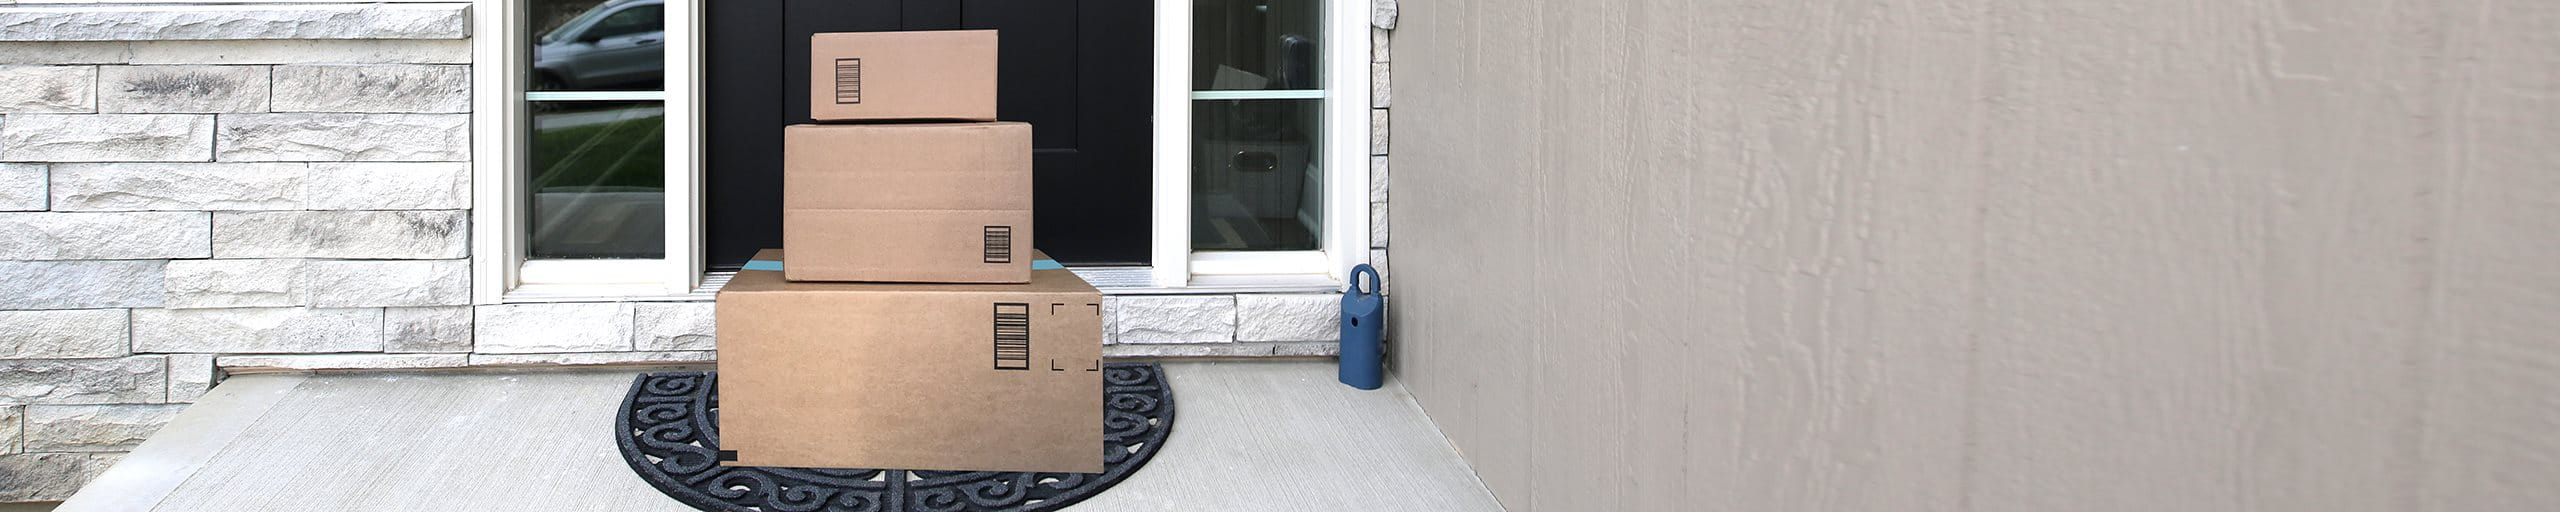 Package outside the front door